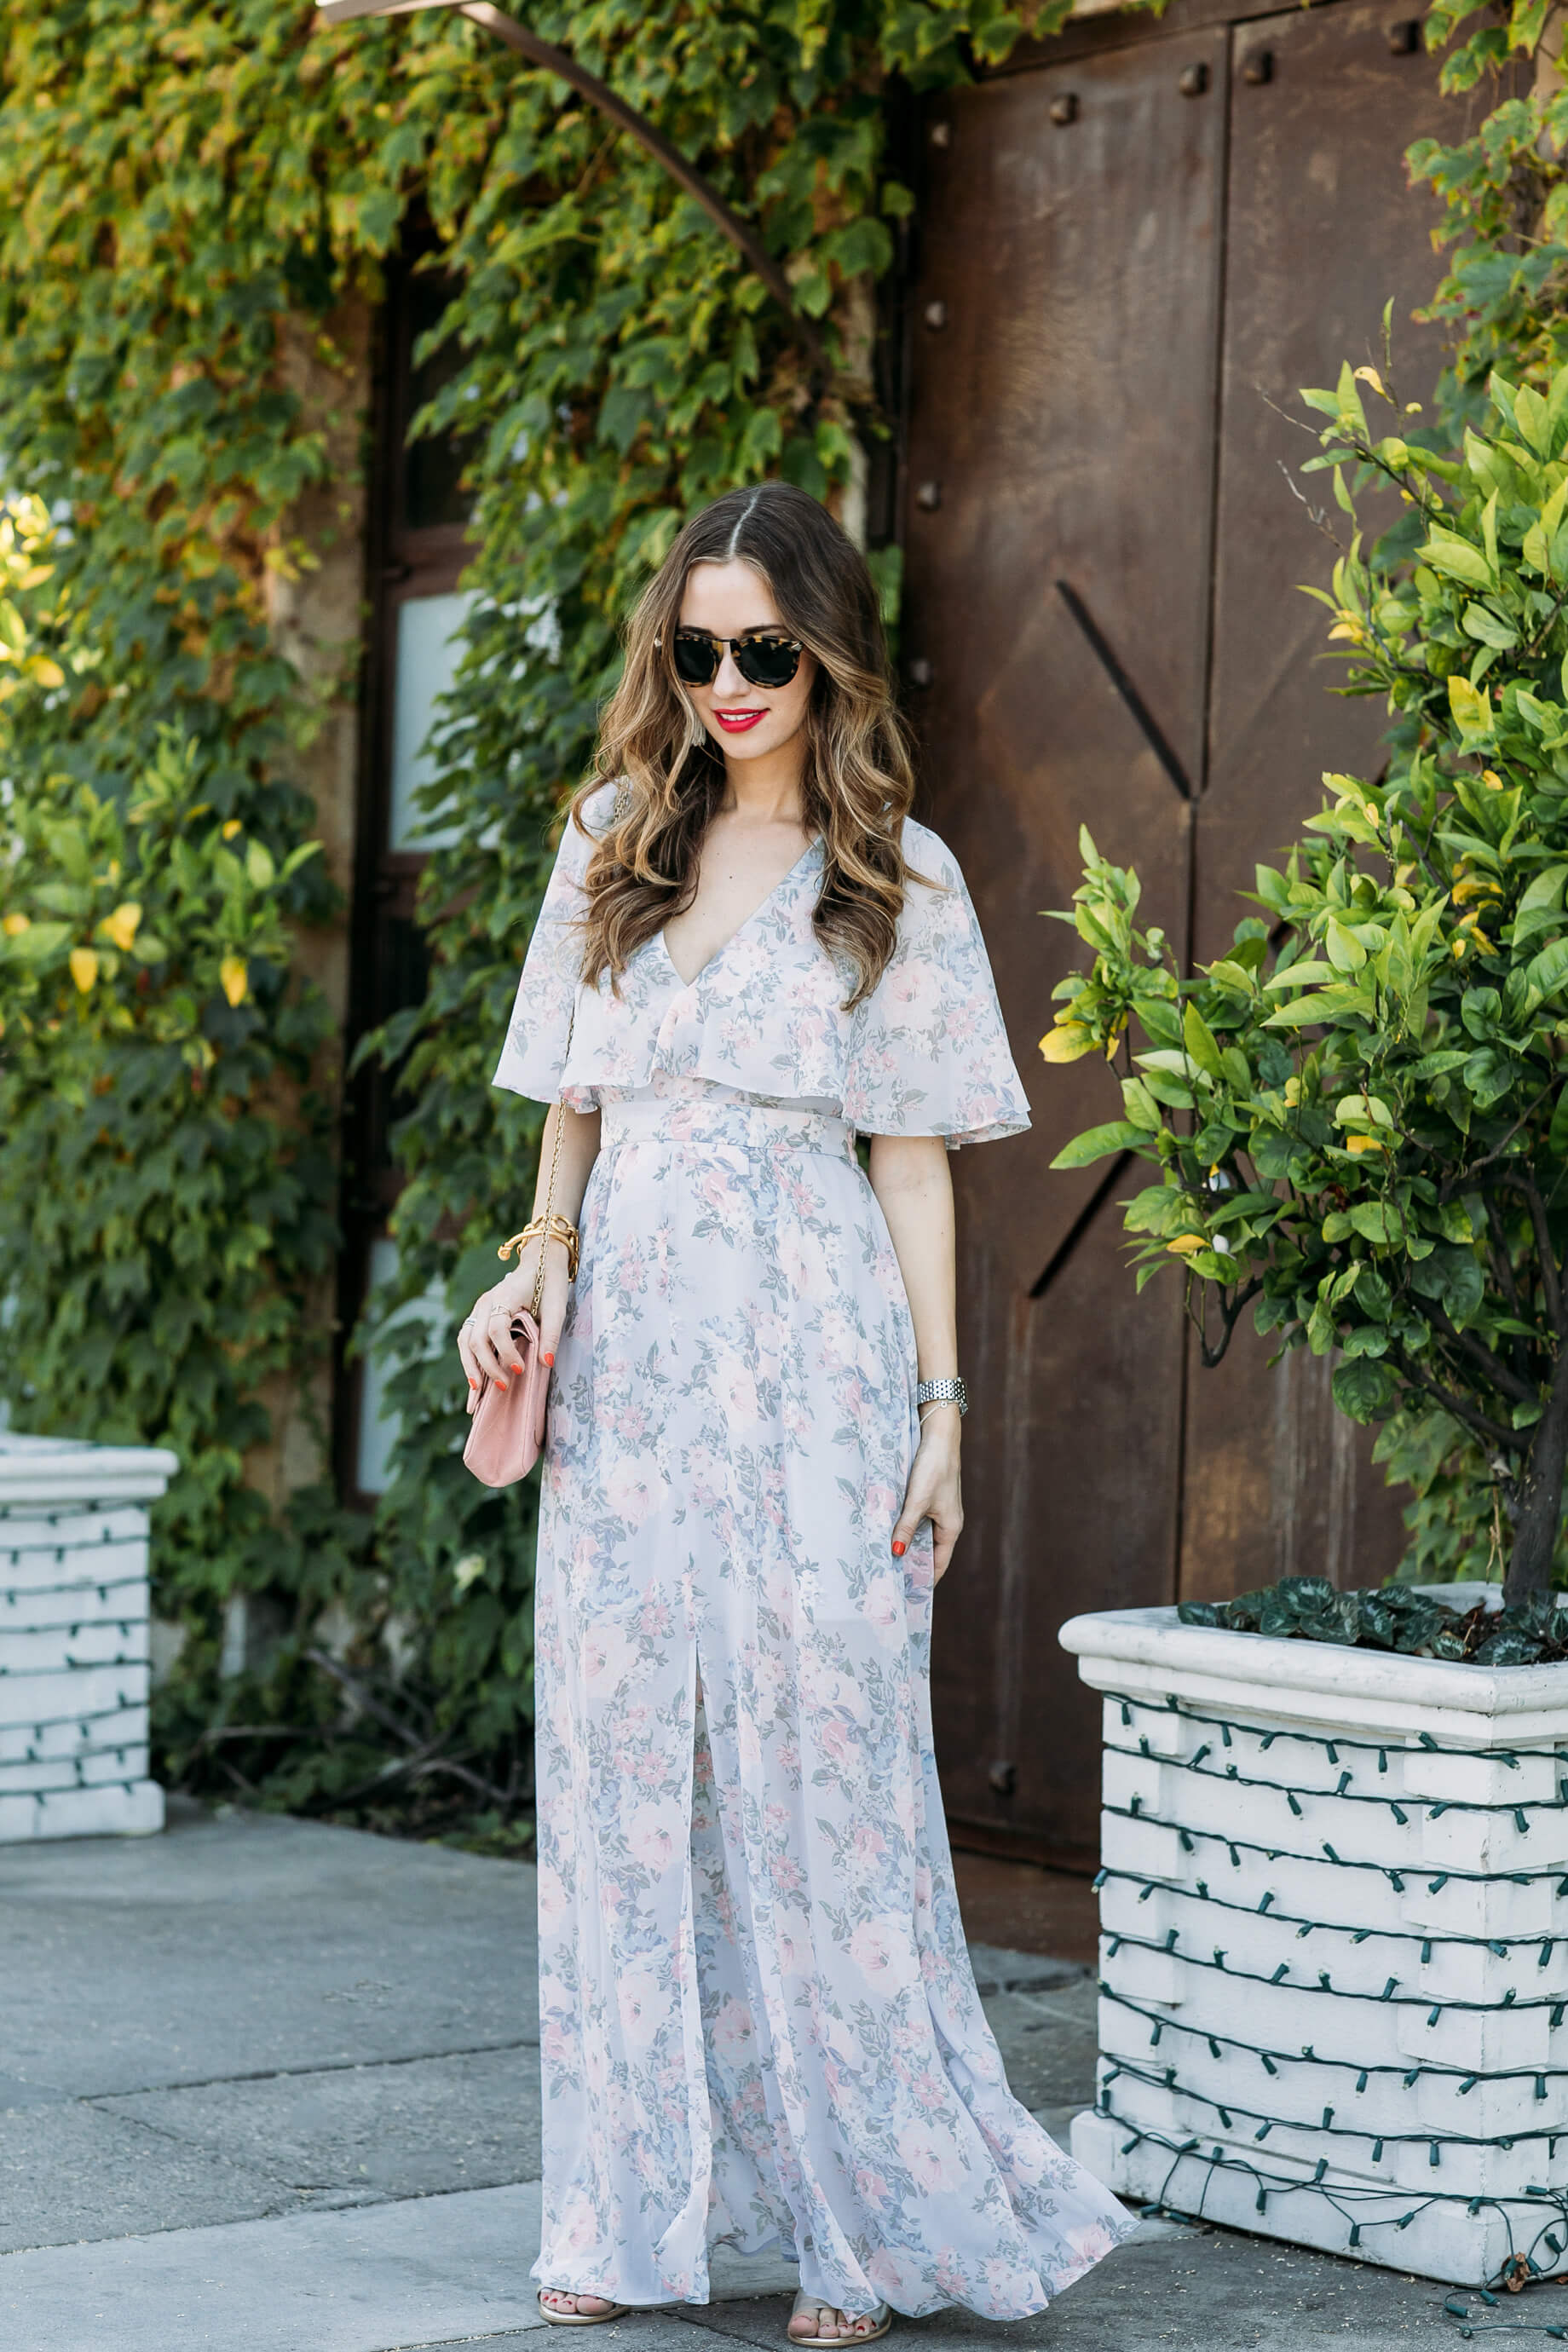 styling not just another floral dress for summer - M Loves M @marmar